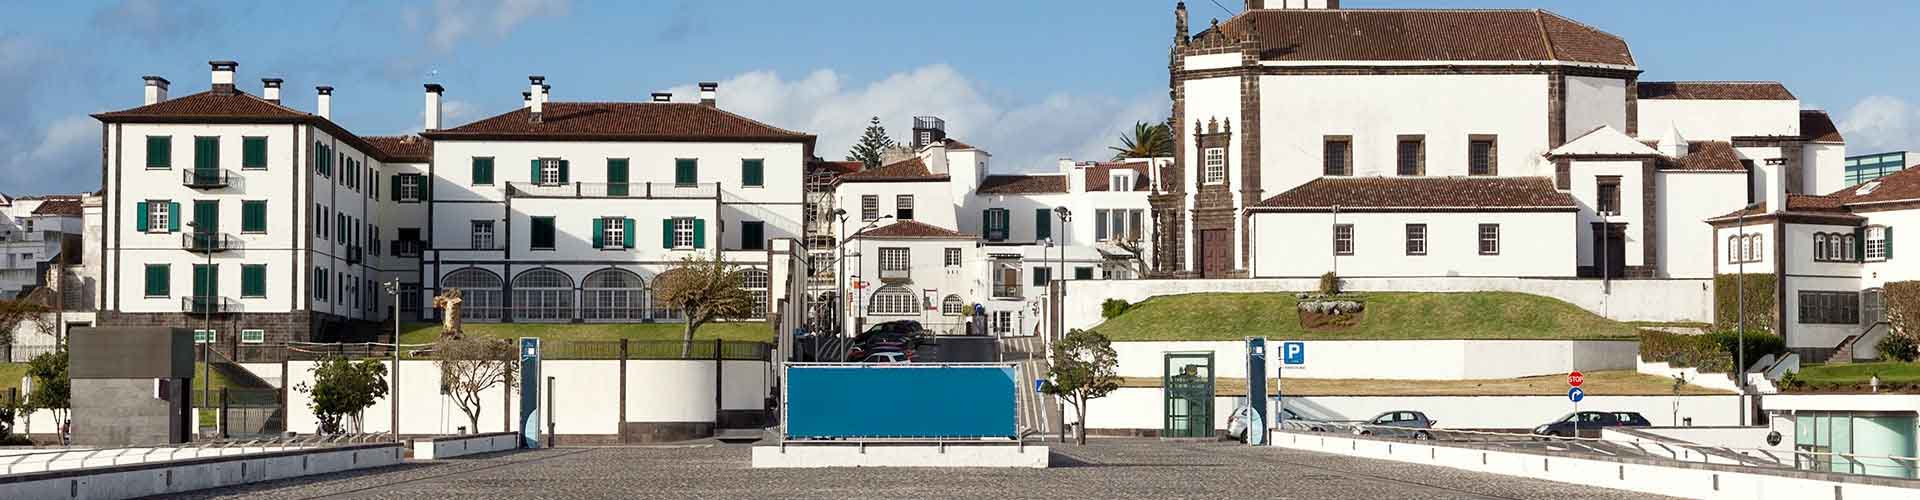 Ponta Delgada – On-campus college university dorms and residence halls in Ponta Delgada. Safe rivate rooms, heap dorms,  maps of Portugalsko, photos and reviews for each On-campus college and university dorm and hall of residence in Ponta Delgada.